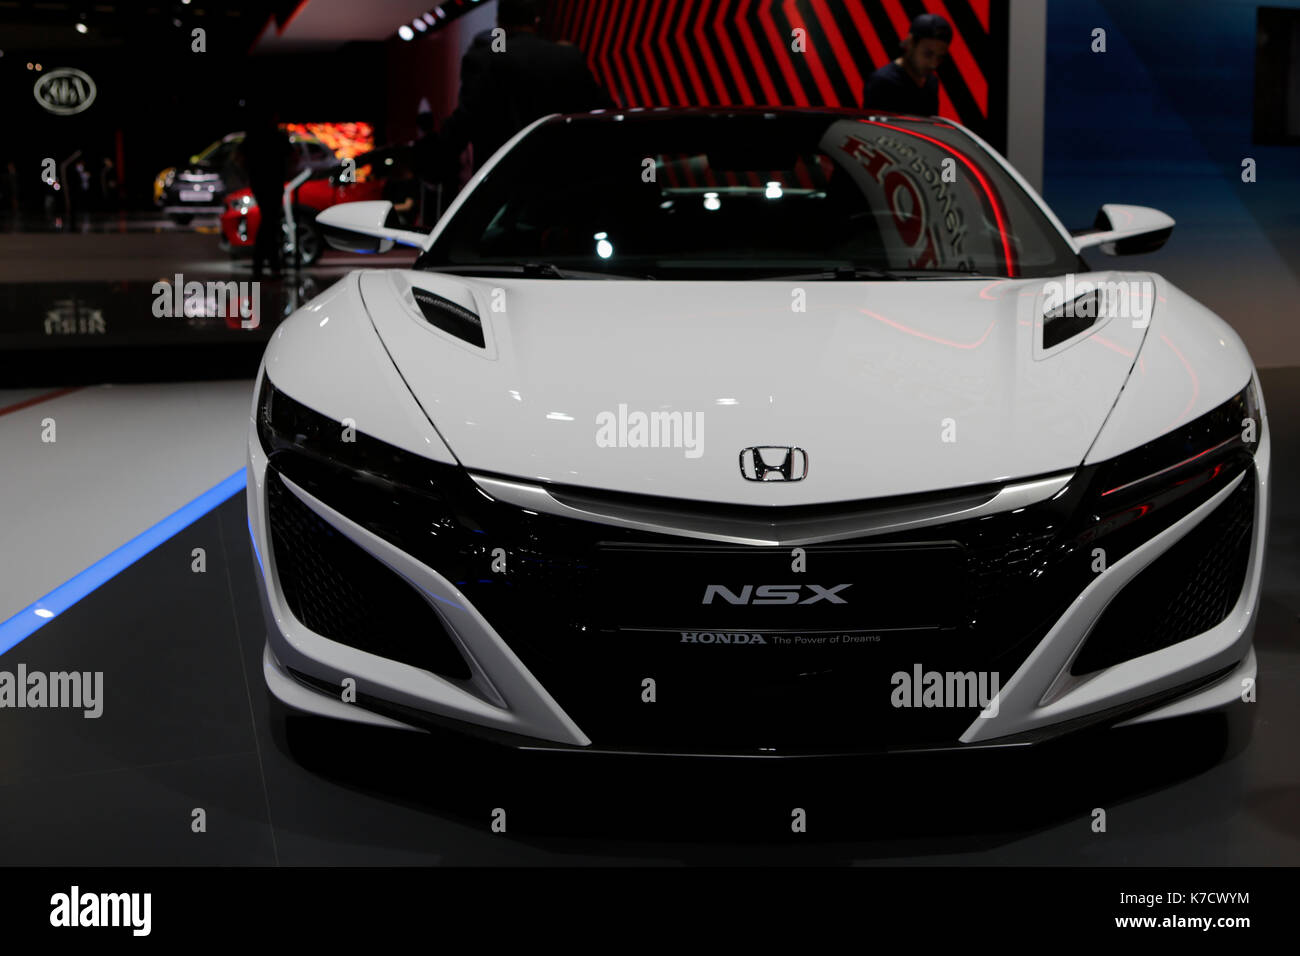 The Japanese Car Manufacturer Honda Presents NSX At 67 IAA Internationale Automobil Ausstellung Opened In Frankfurt For Trade